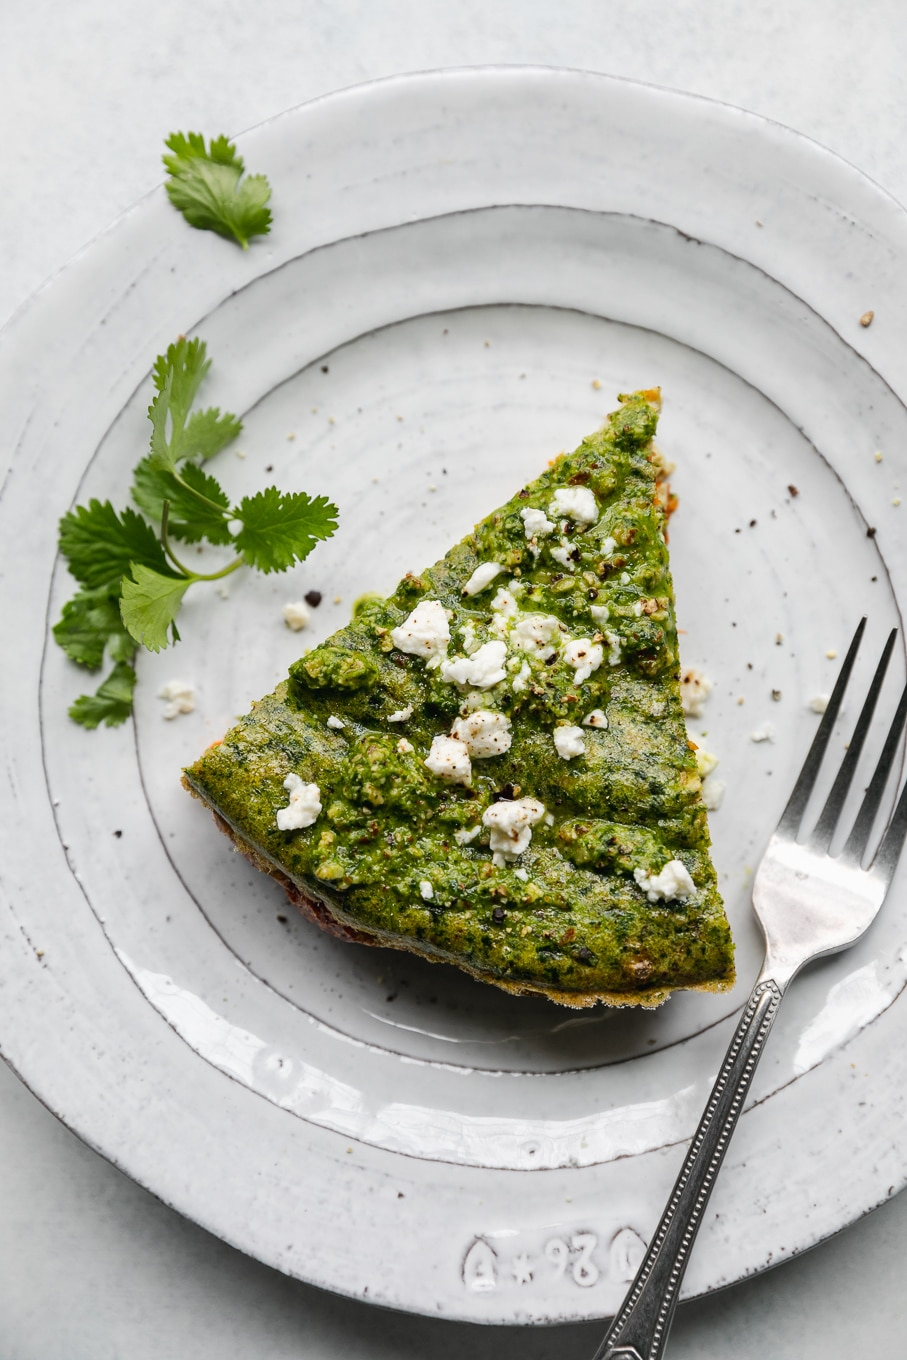 Overhead shot of a slice of cilantro pesto sweet potato frittata with crumbled feta on top on a white plate with a silver fork resting on the plate